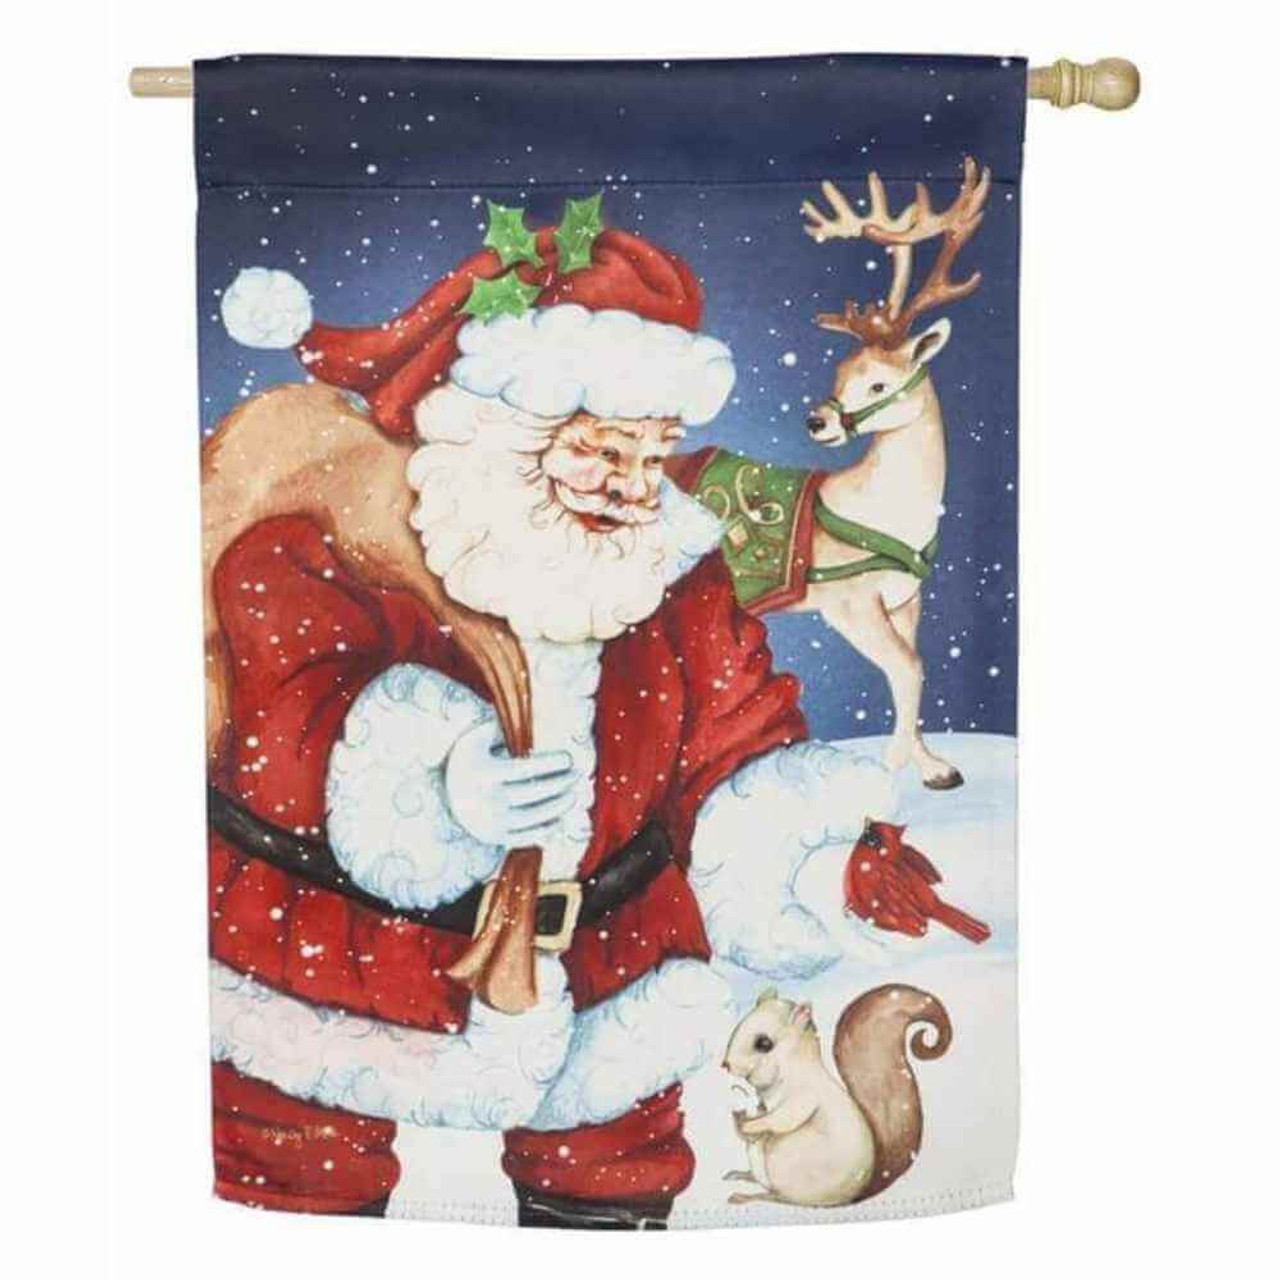 Classic jolly Santa, with a holly sprig in his hat and a bag of presents over his shoulder, smiling at a small squirrel  in the falling snow as a reindeer looks at them from the background.  The sky is a navy blue and freshly fallen snow lies on the ground.